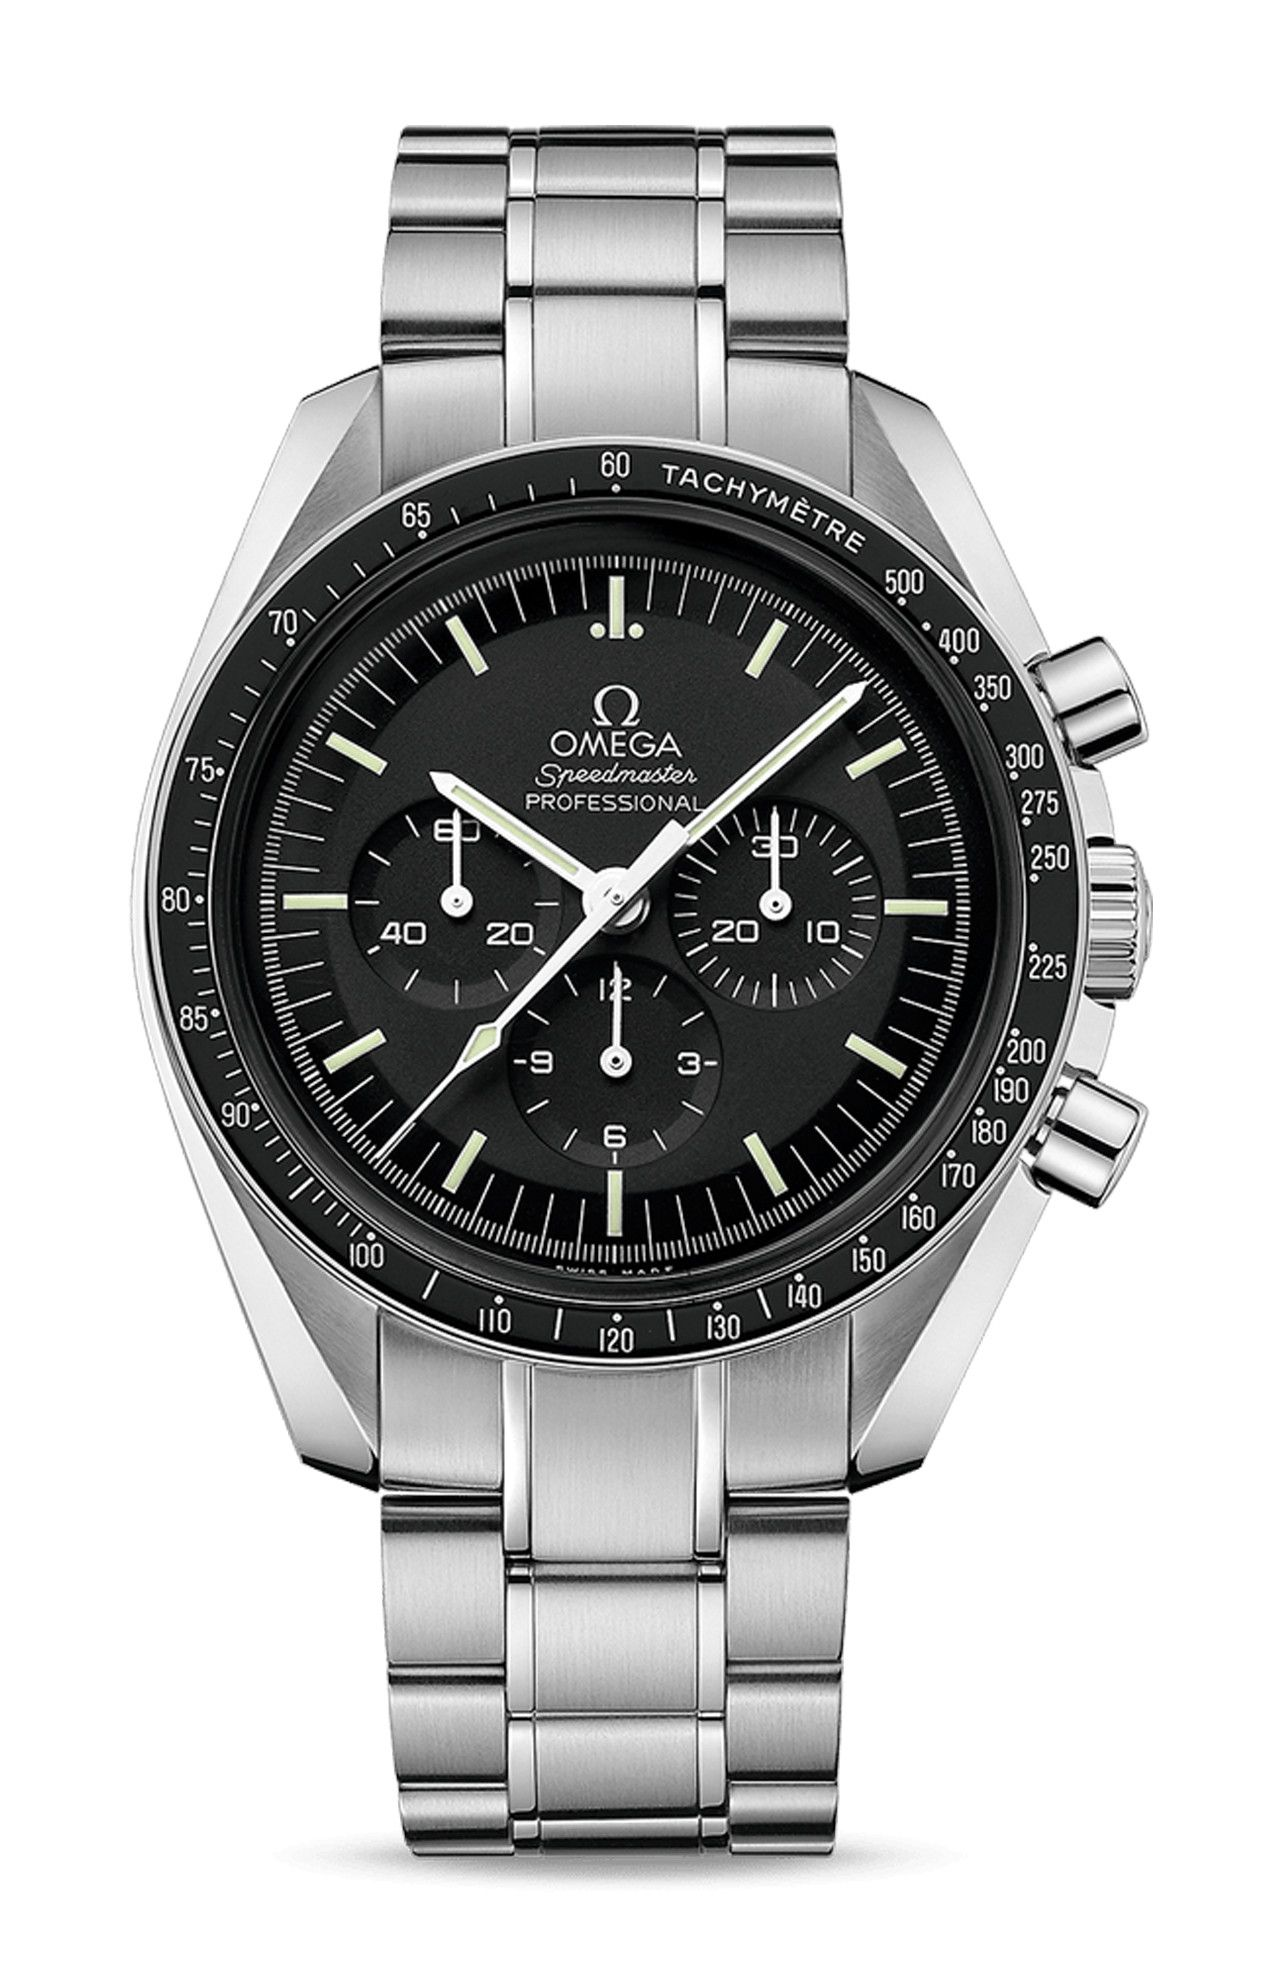 MOONWATCH PROFESSIONAL CHRONOGRAPH - VETRO ZAFFIRO - 311.30.42.30.01.006